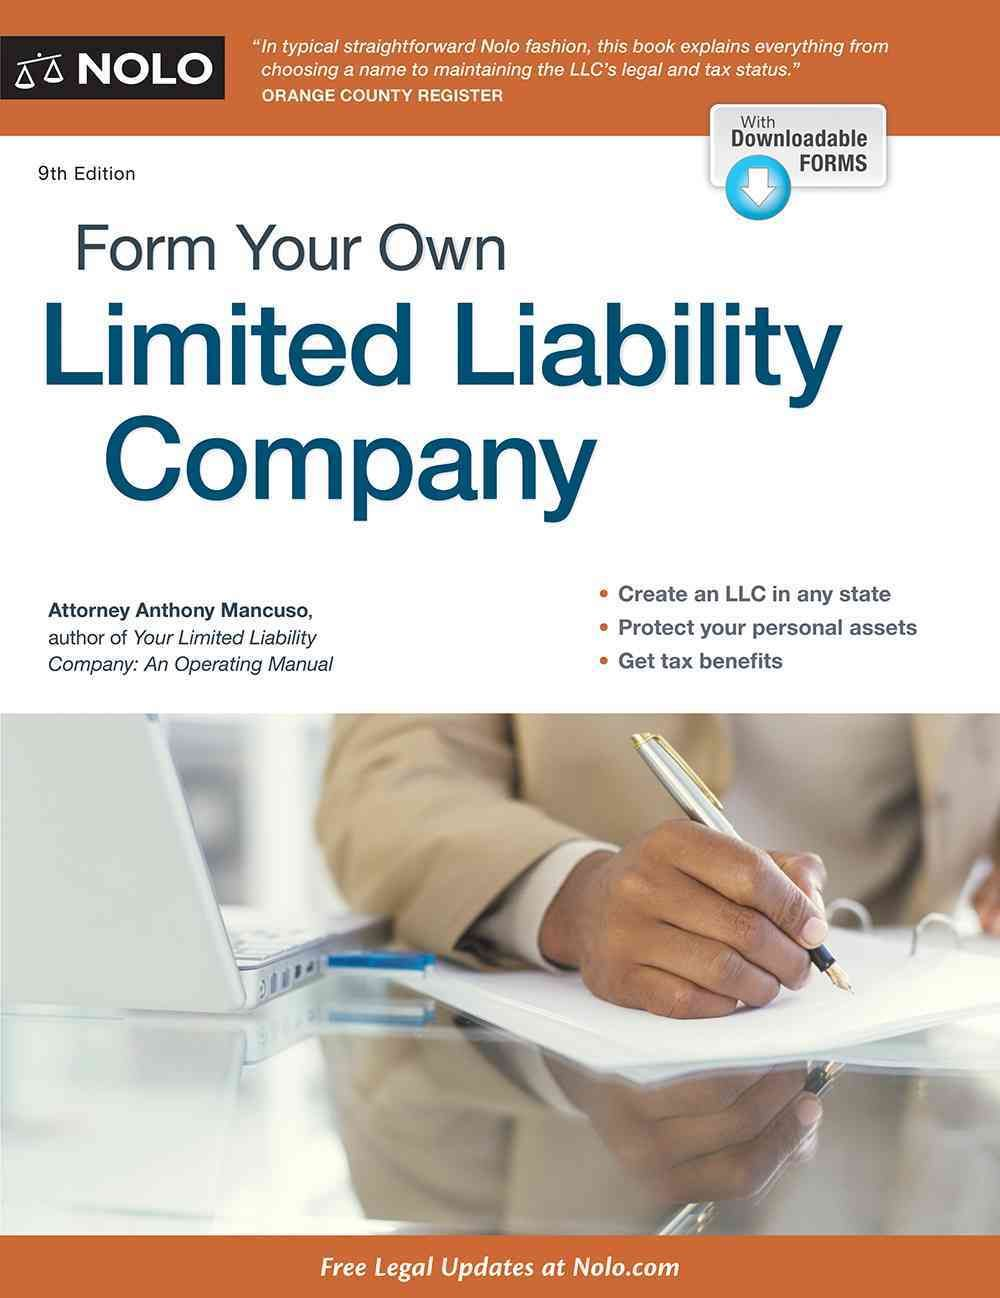 Form Your Own Limited Liability Company | Limited Liability ...